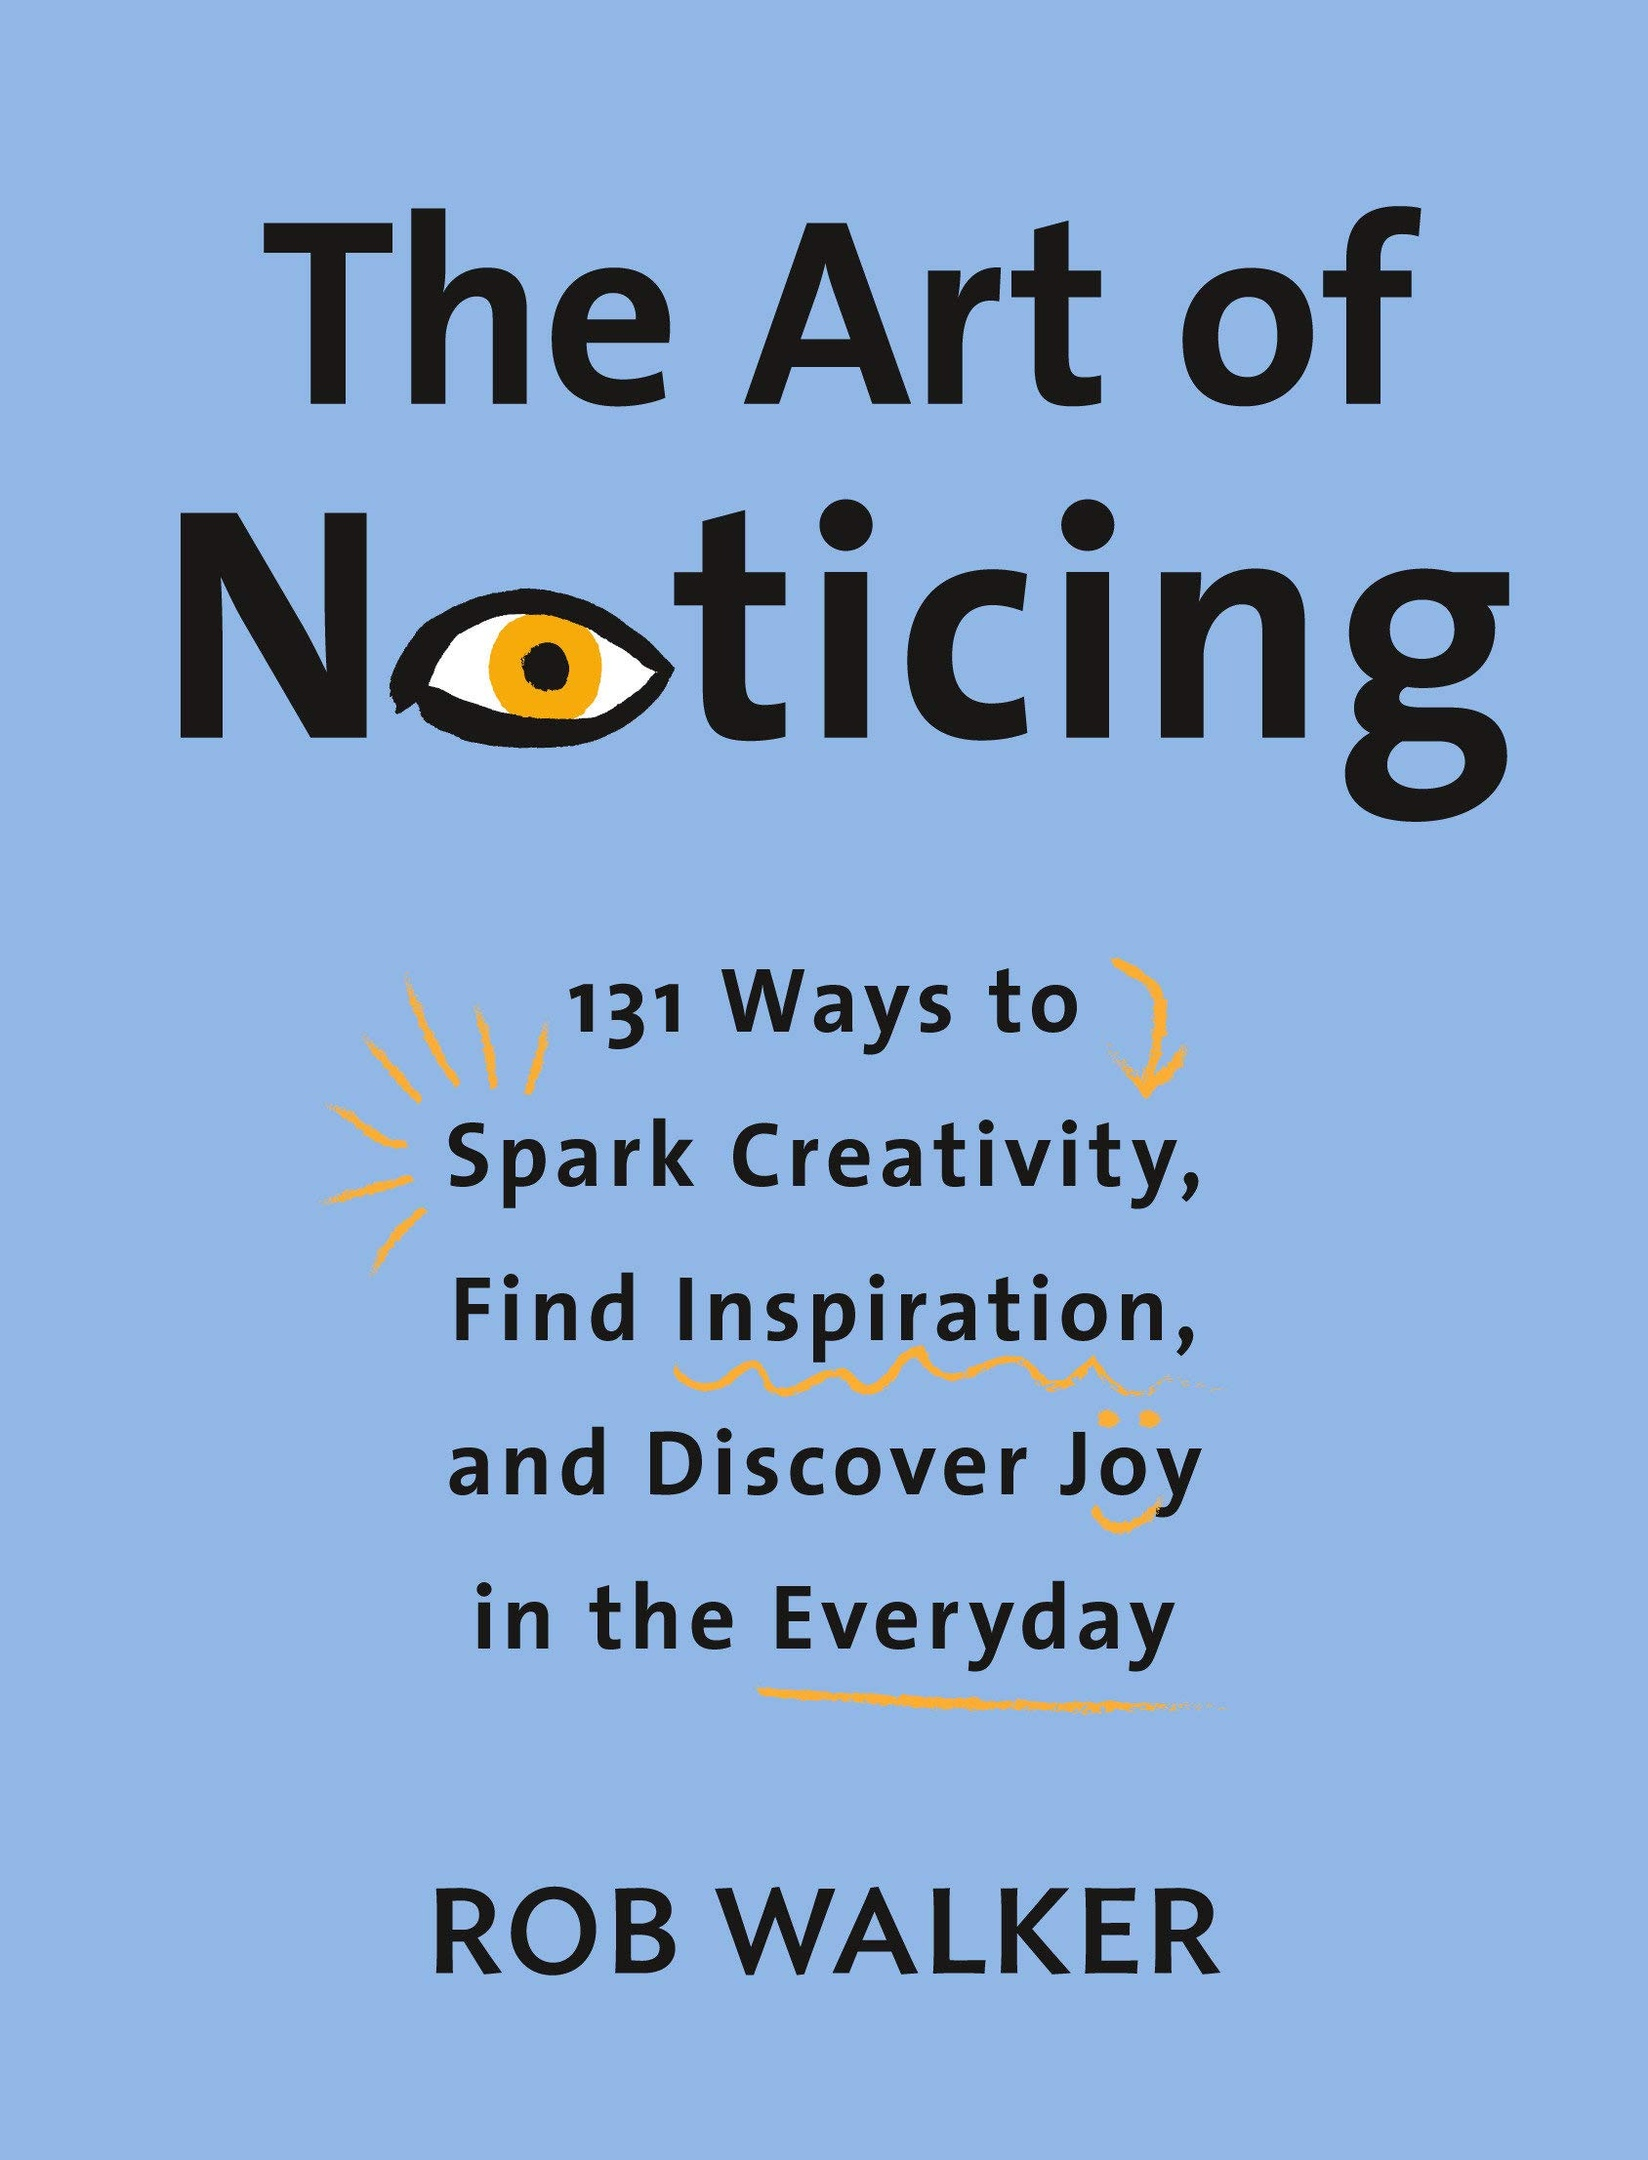 Rob Walker – The Art Of Noticing